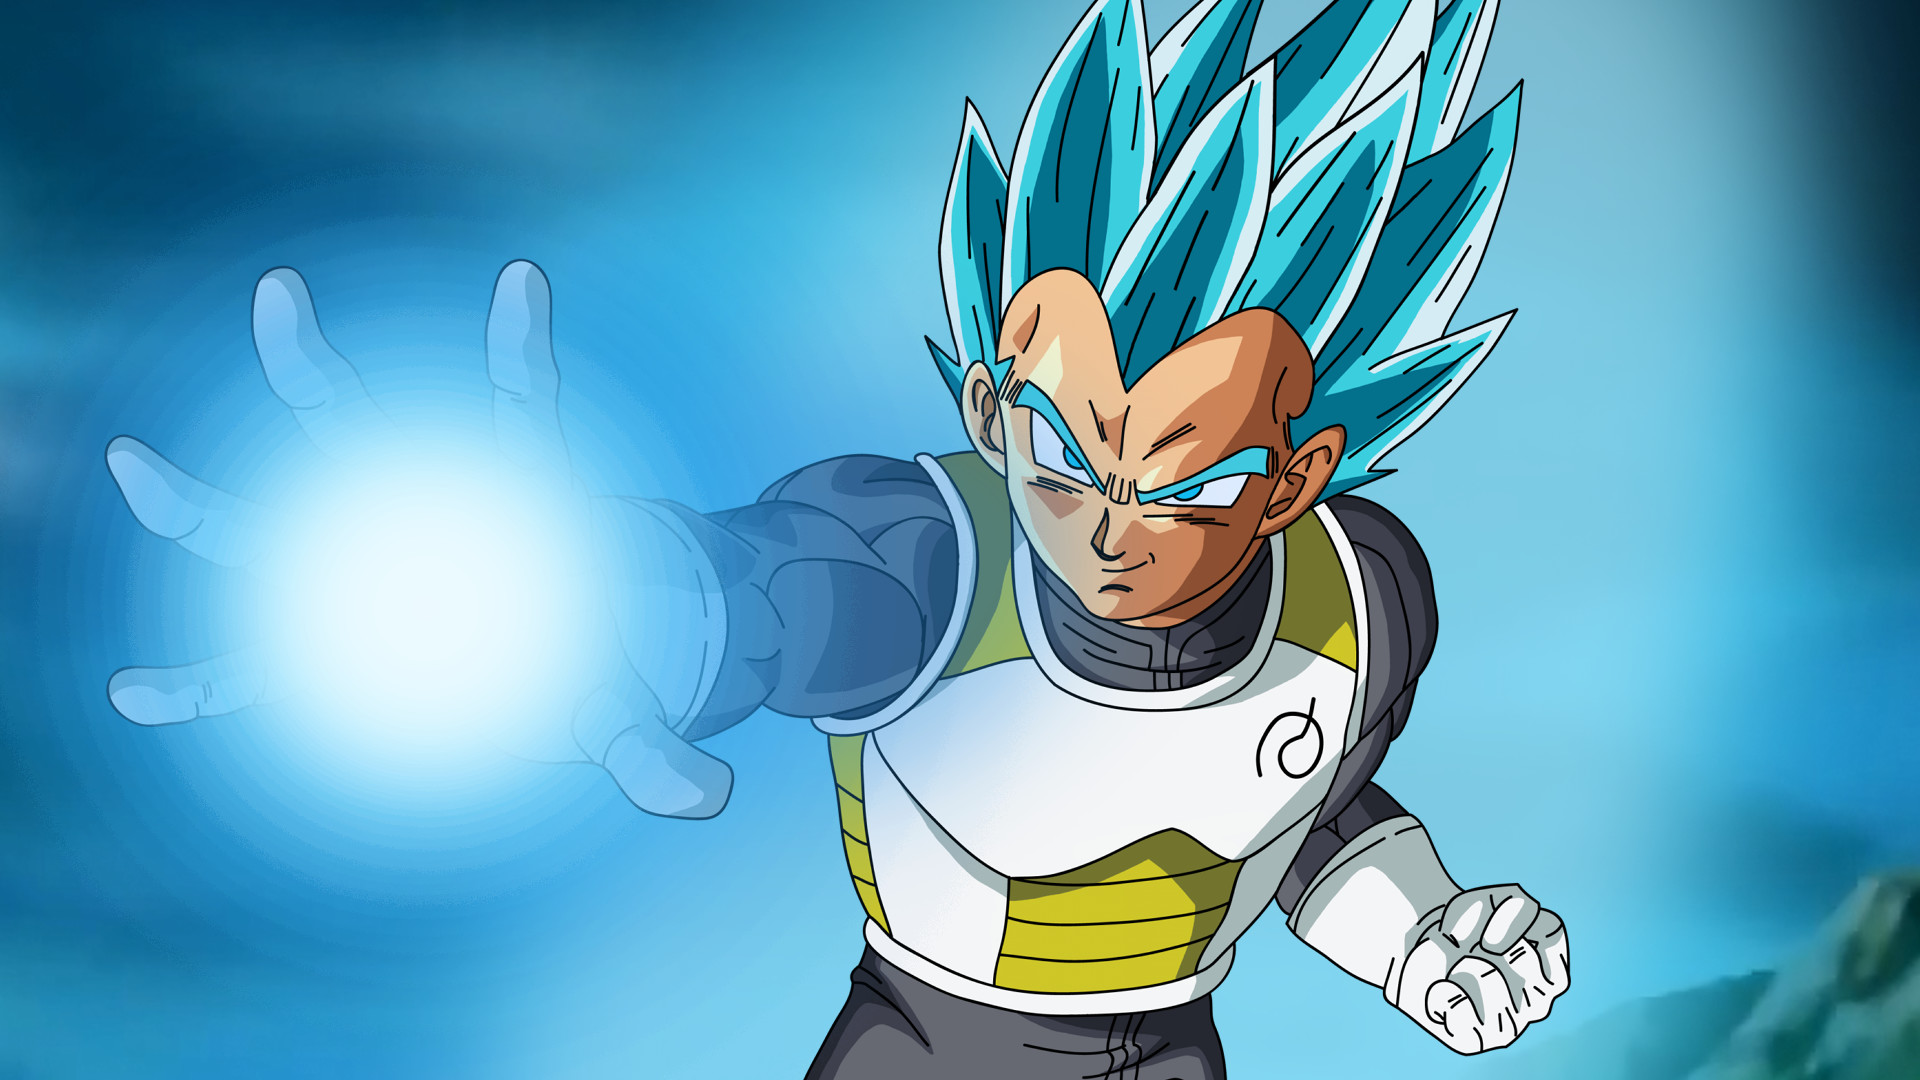 Vegeta Hd Wallpapers 69 Images